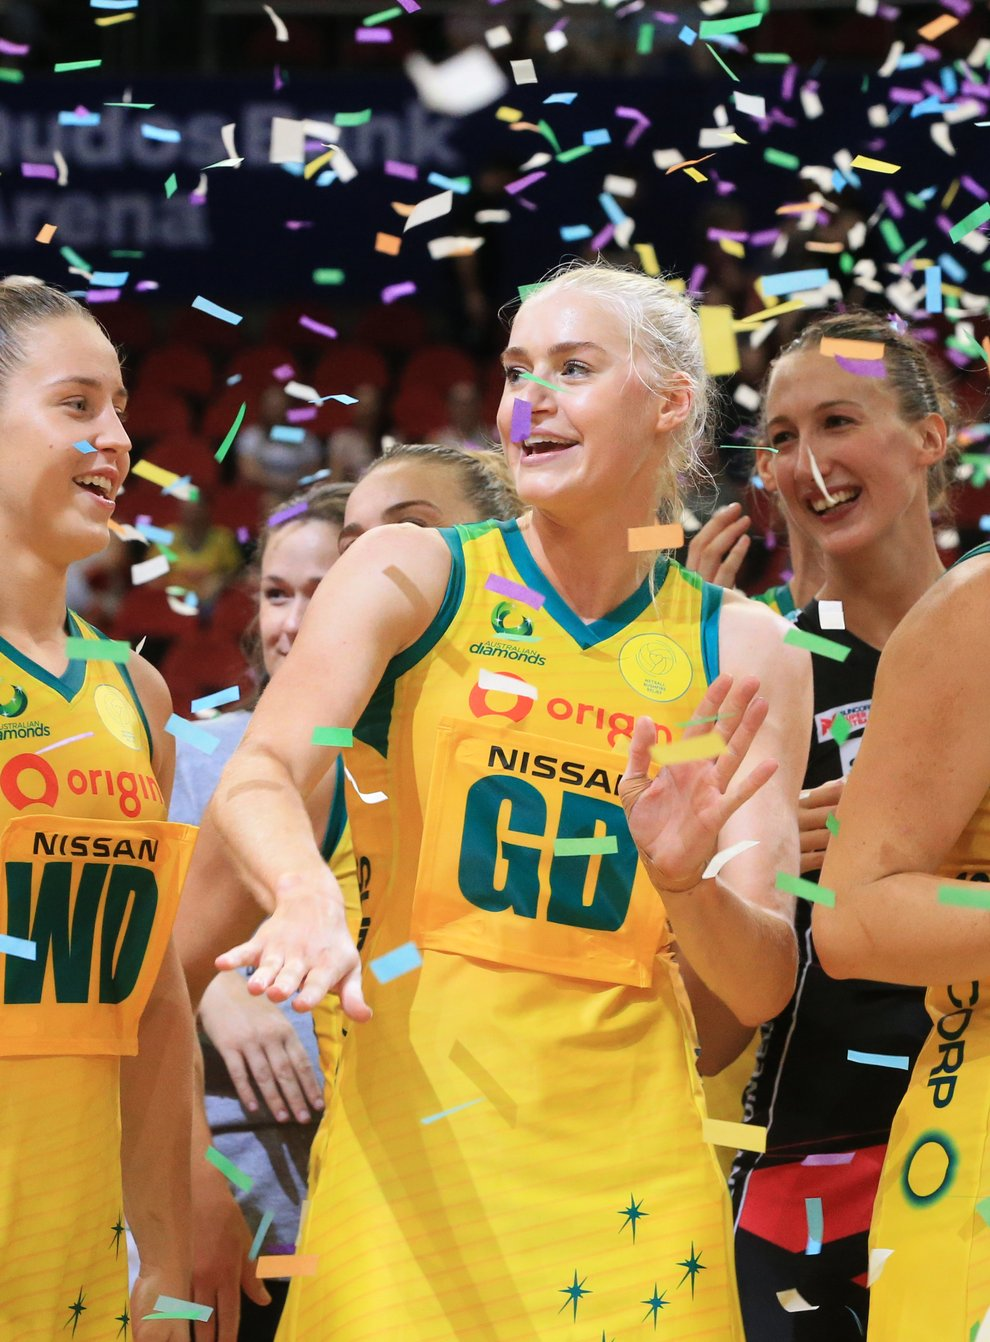 Netball Australia have updated their guidelines on the inclusion of transgender athletes